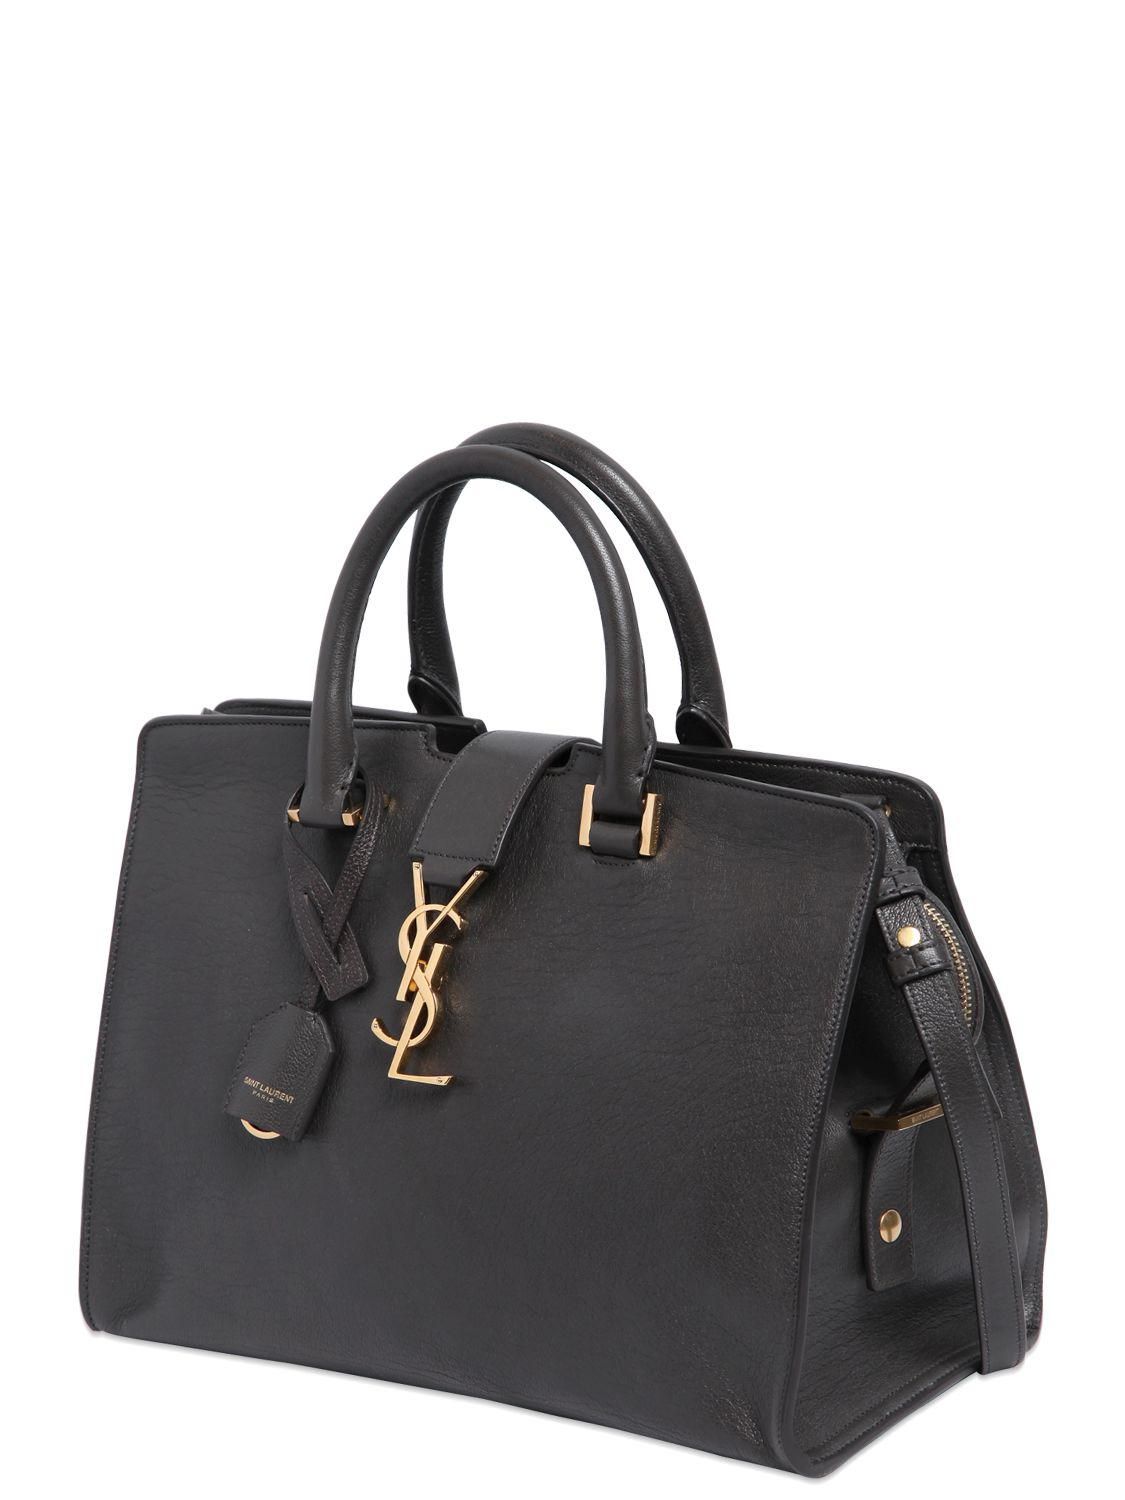 Lyst - Saint Laurent Small Cabas Monogram Leather Bag in Gray f5bf41491acc8